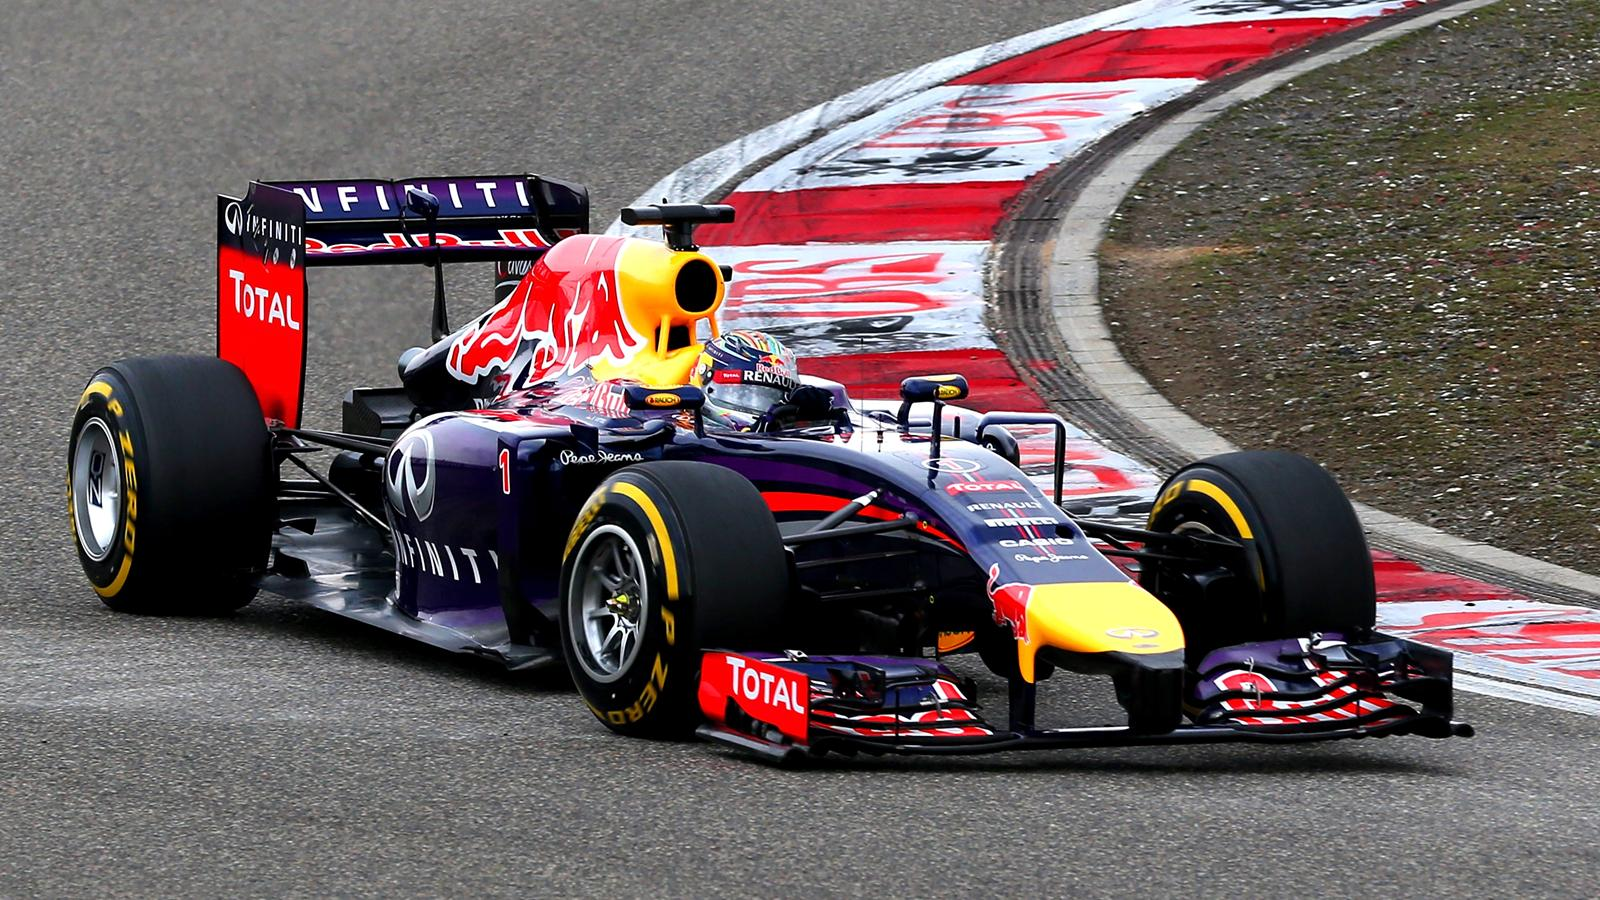 Sebastian Vettel (Red Bull) - GP of China 2014